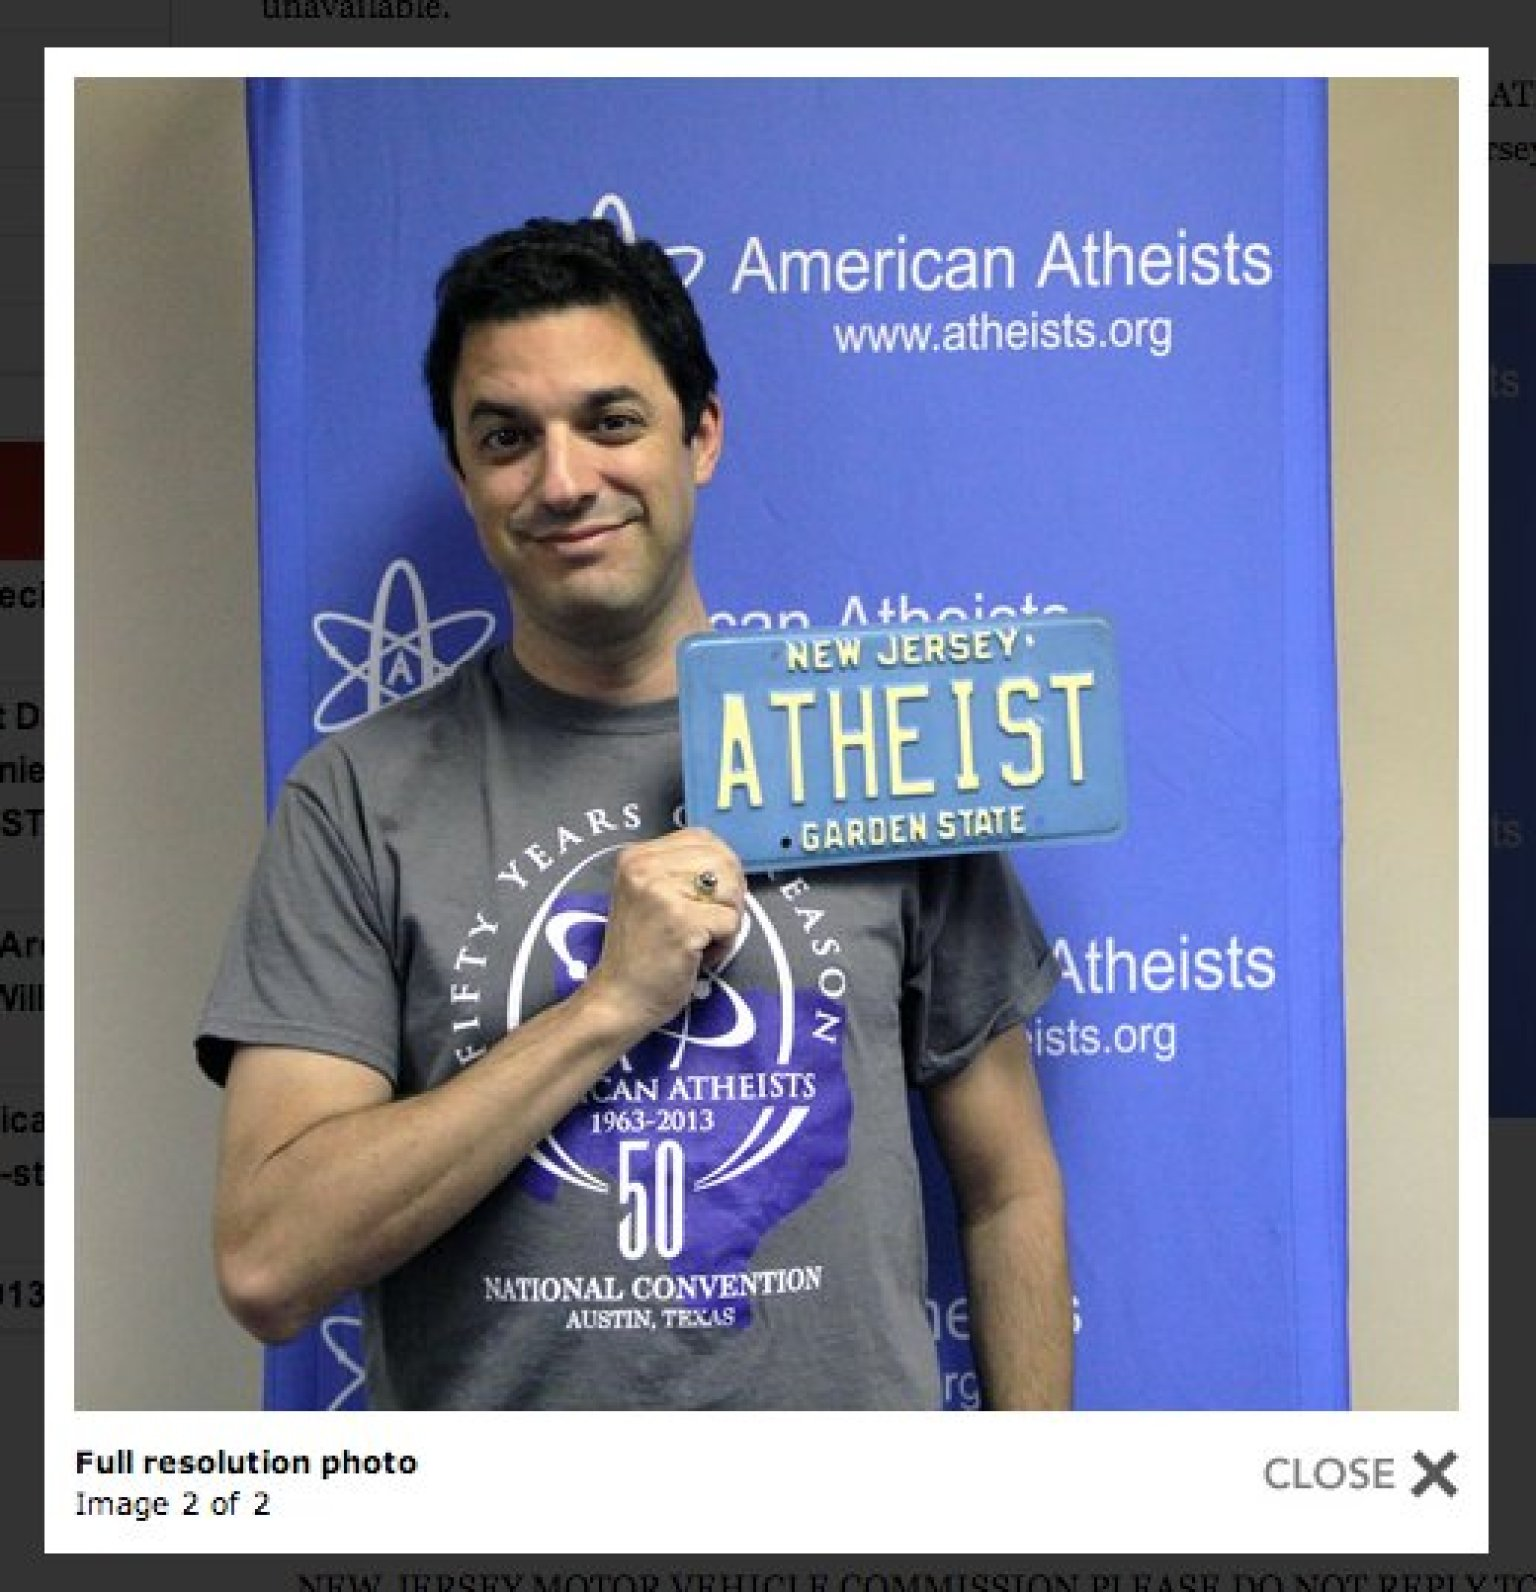 american athesist Following a lawsuit and more than a year of controversy, at noon on saturday a group called the american atheists will unveil the united states' first public monument to atheism in a square outside the bradford county courthouse in starke, florida, near jacksonville.